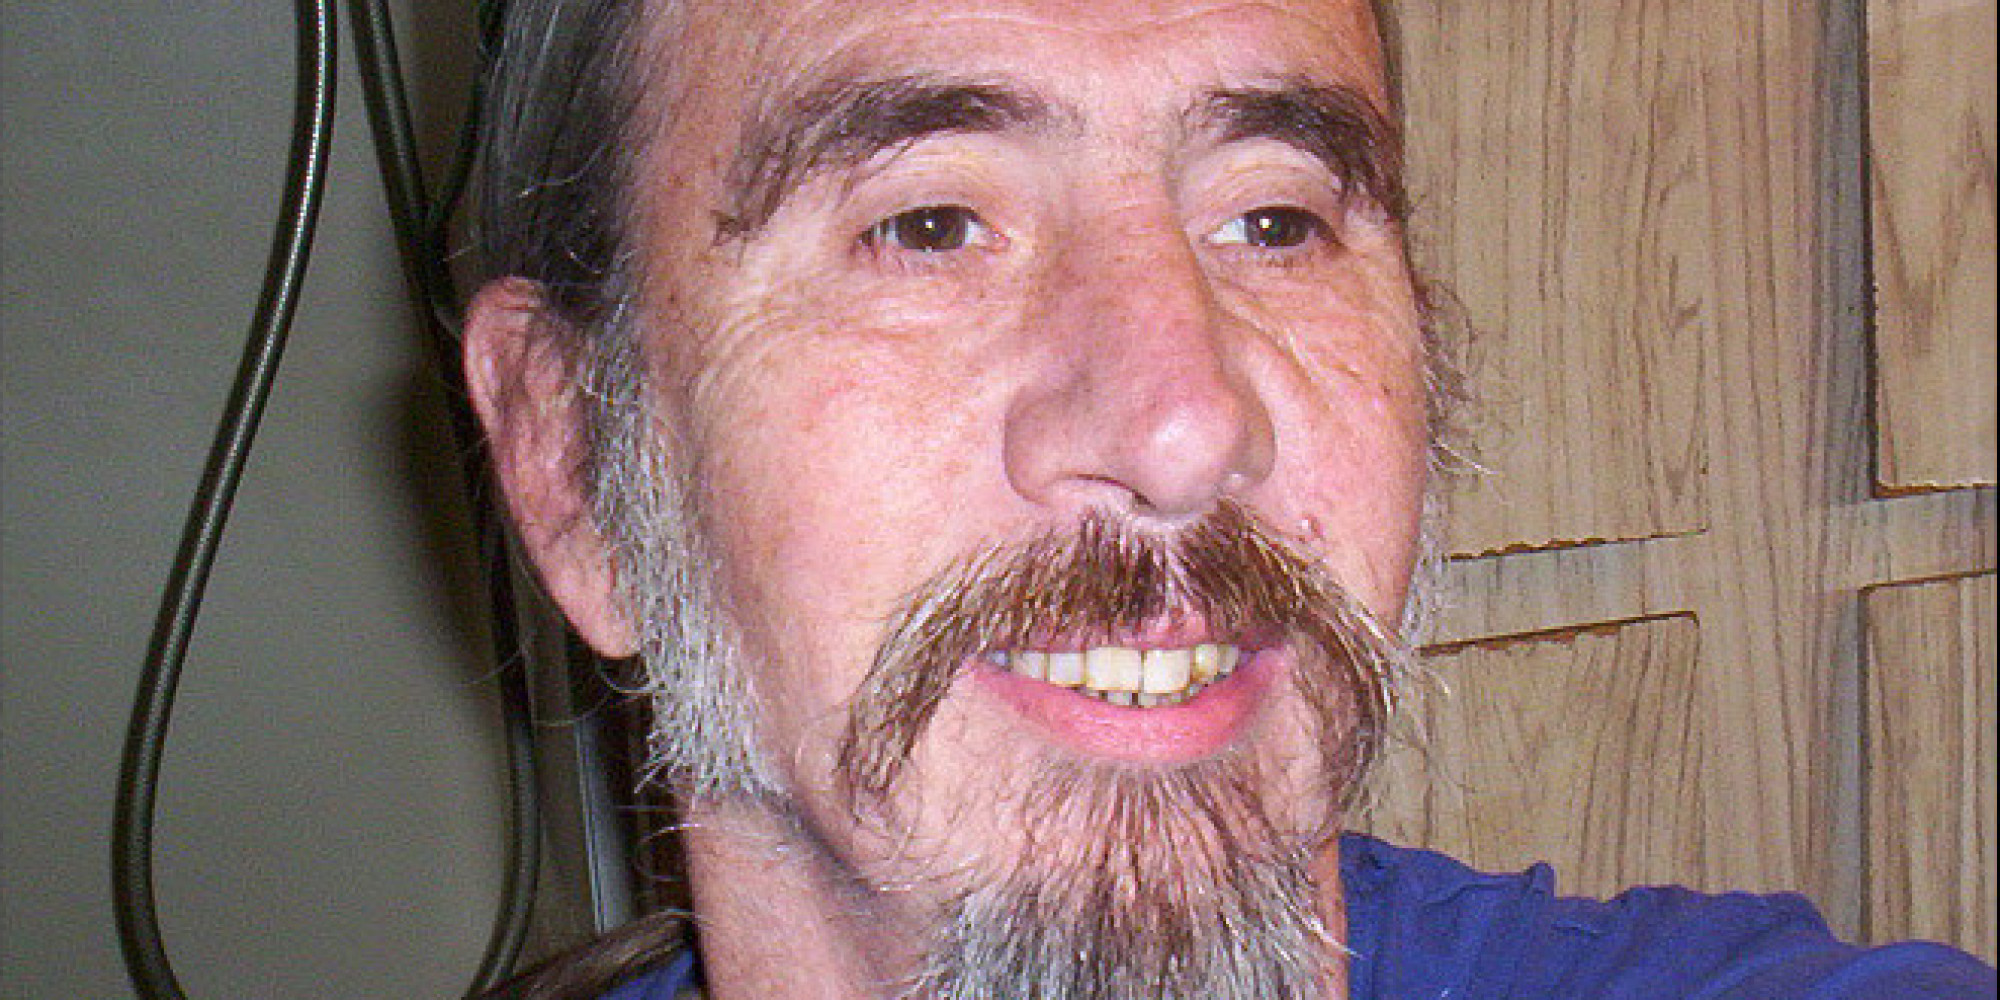 Search continues for missing hiker Jim Griffin